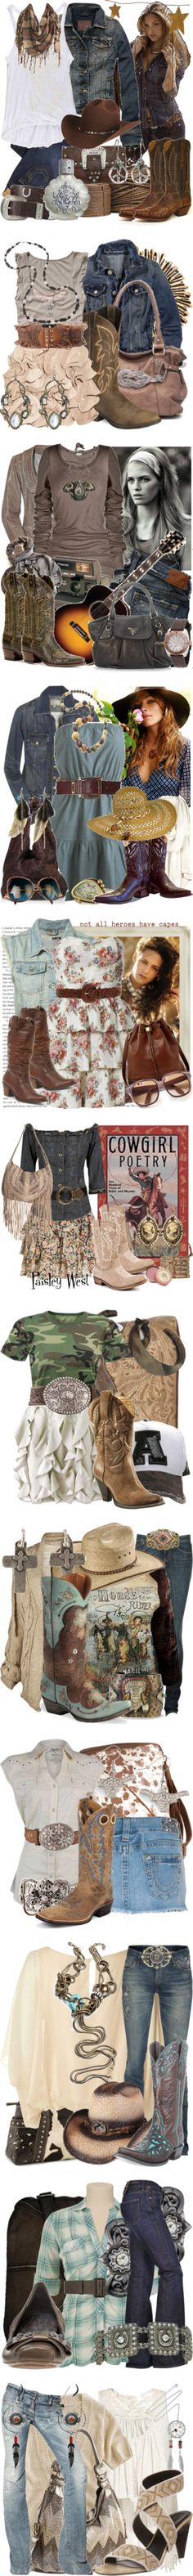 Cowgirl chic...I need every piece of this clothing in my closet NOW!!!